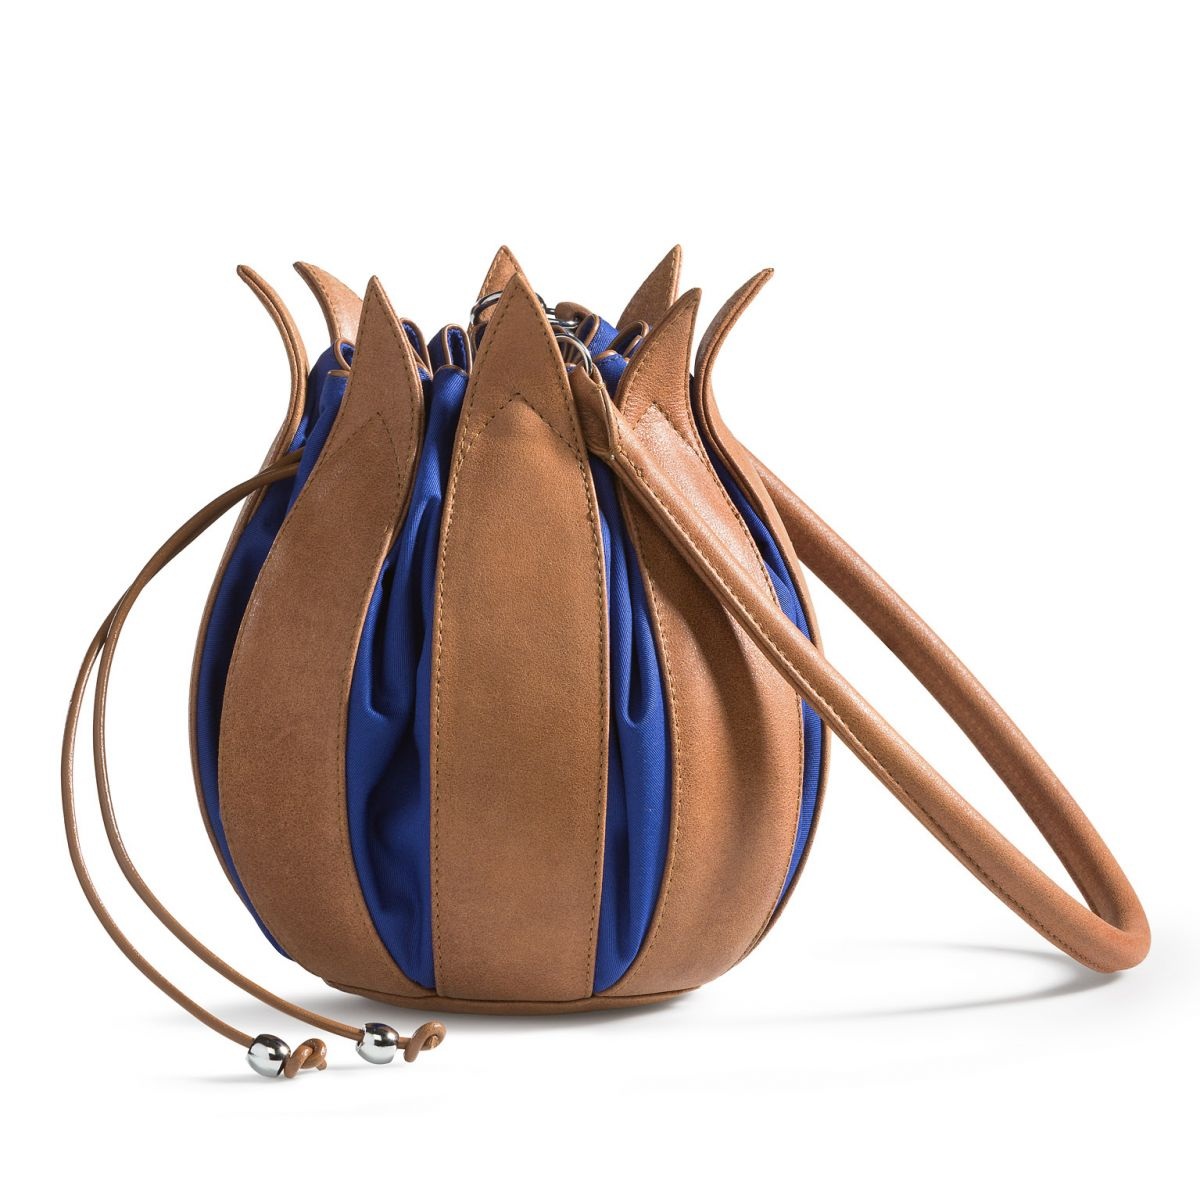 Tulip Bag - Vintage Leather - Taupe/Cobalt - Large